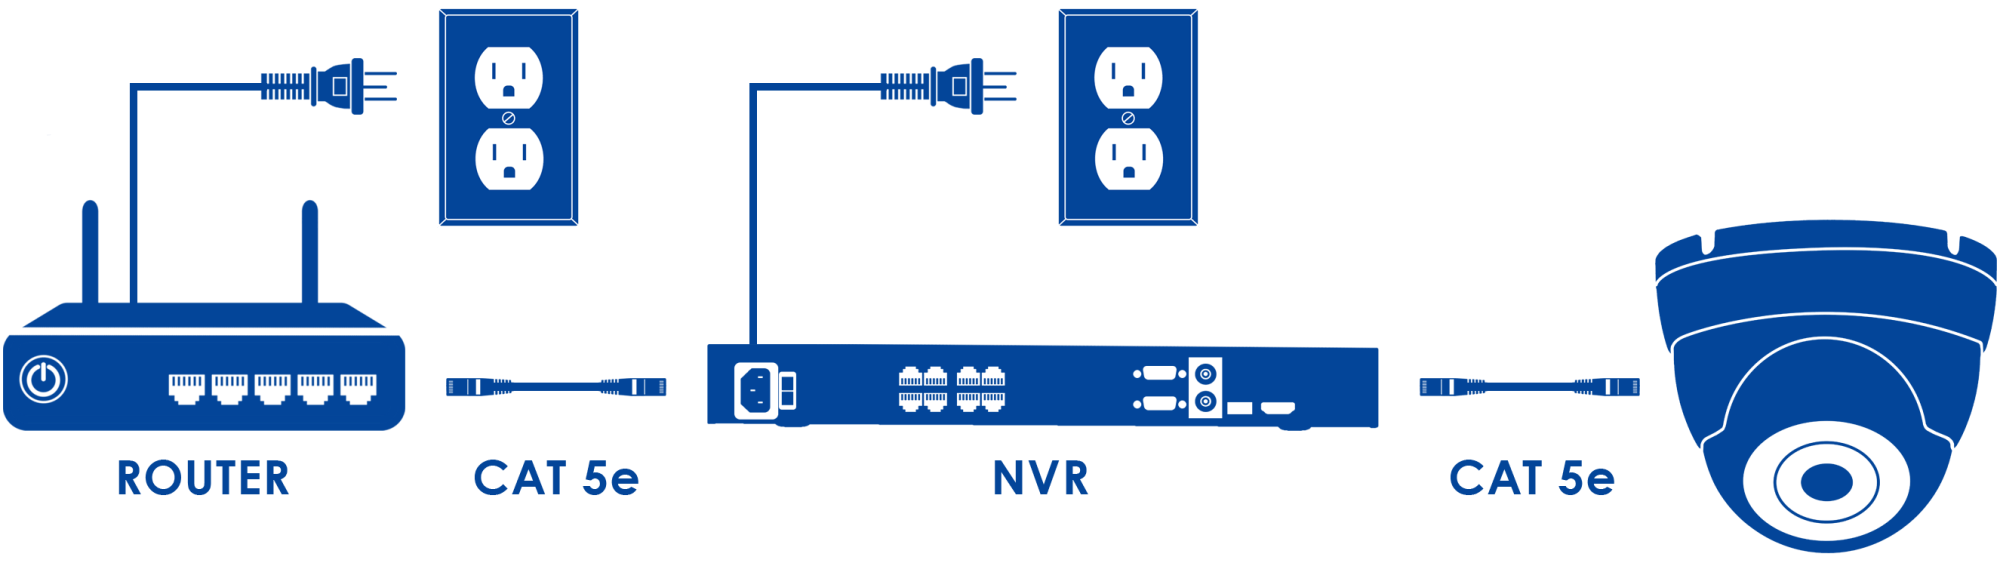 hight resolution of cat5e wiring diagram for nvr wiring diagram viewlorex support article display cat5e wiring diagram for nvr